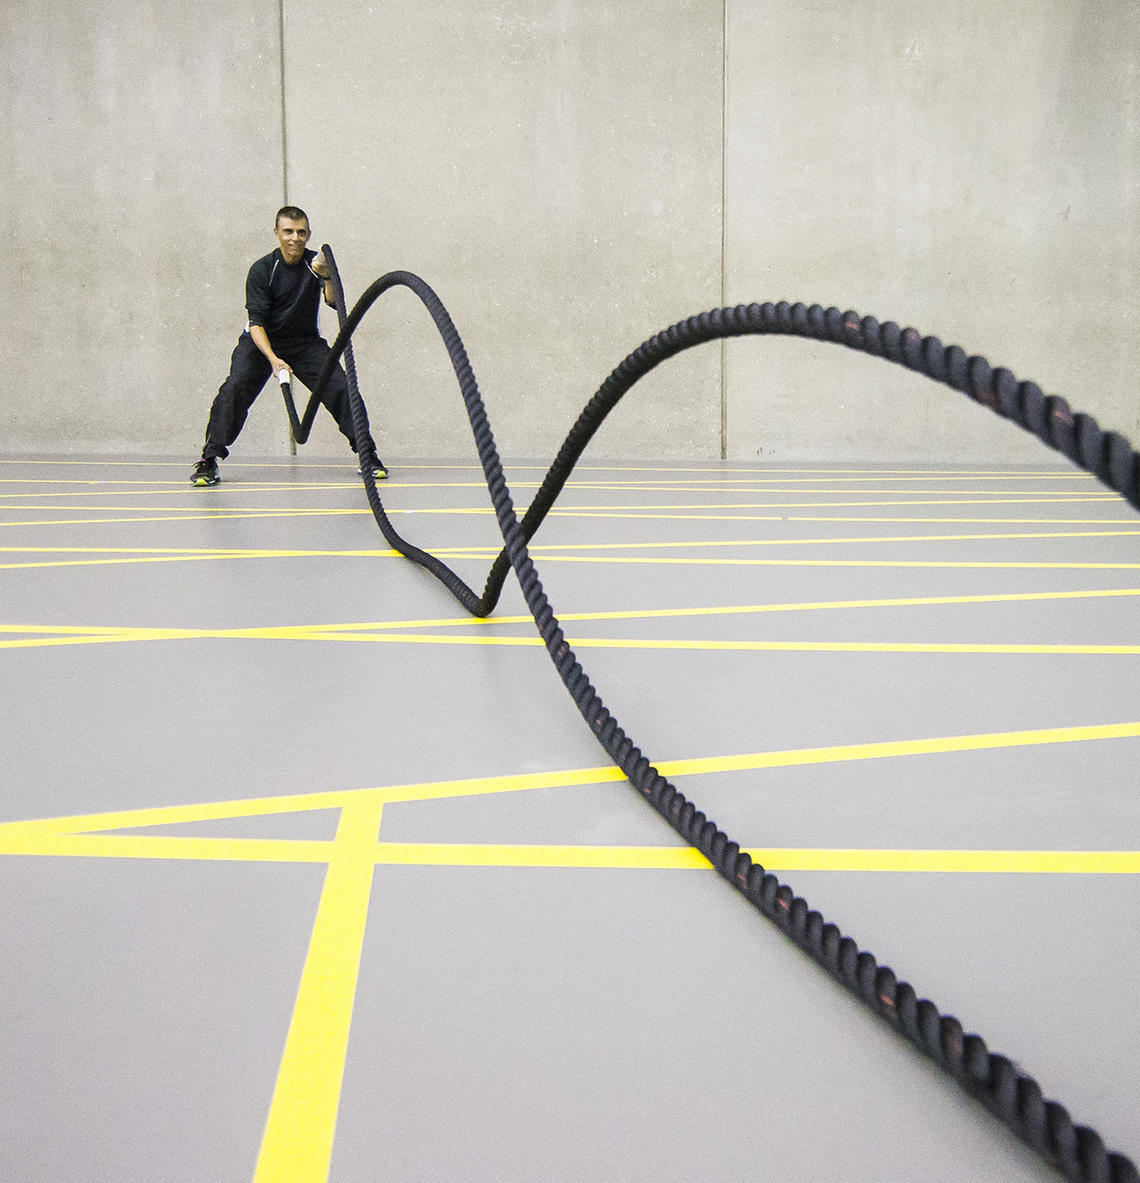 Man working out with battle ropes in Fitness Centre